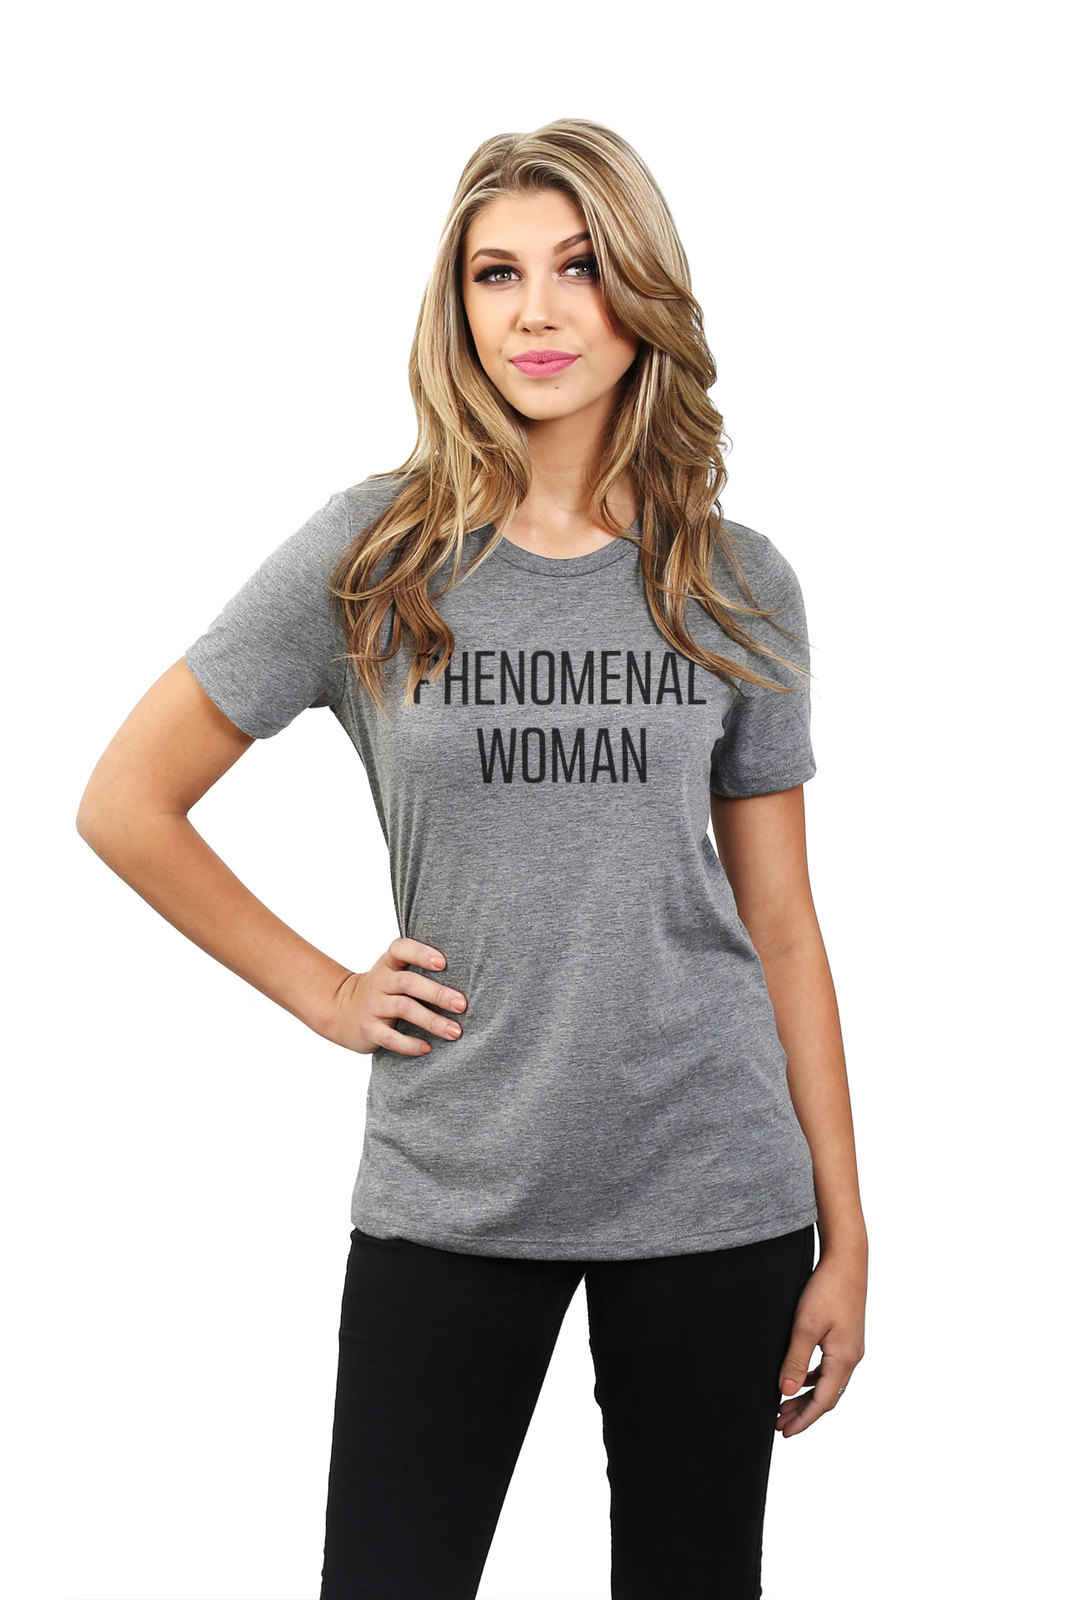 Thread Tank Phenomenal Woman Women's Relaxed T-Shirt Tee Heather Grey